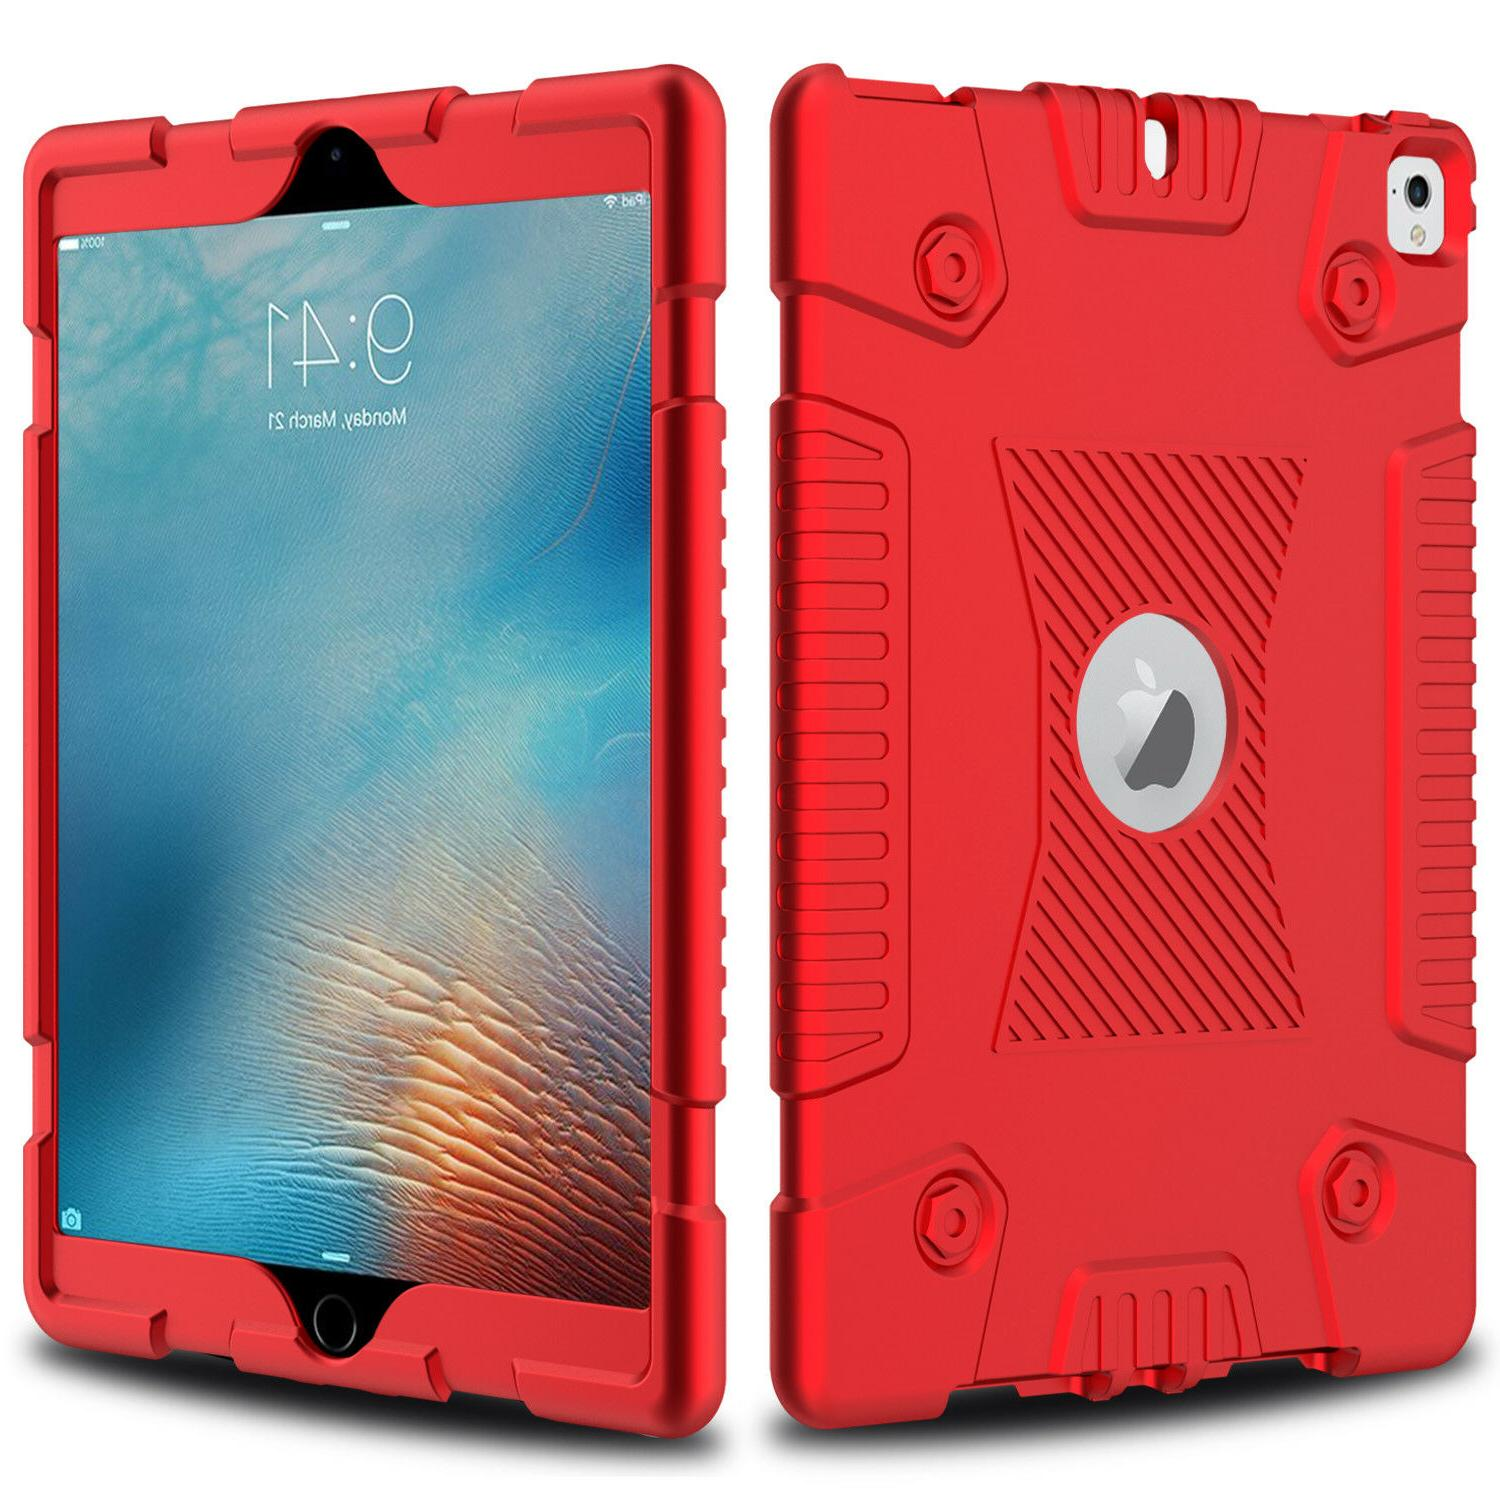 For iPad 9.7 6th Gen Generation Case Shockproof Soft Cover